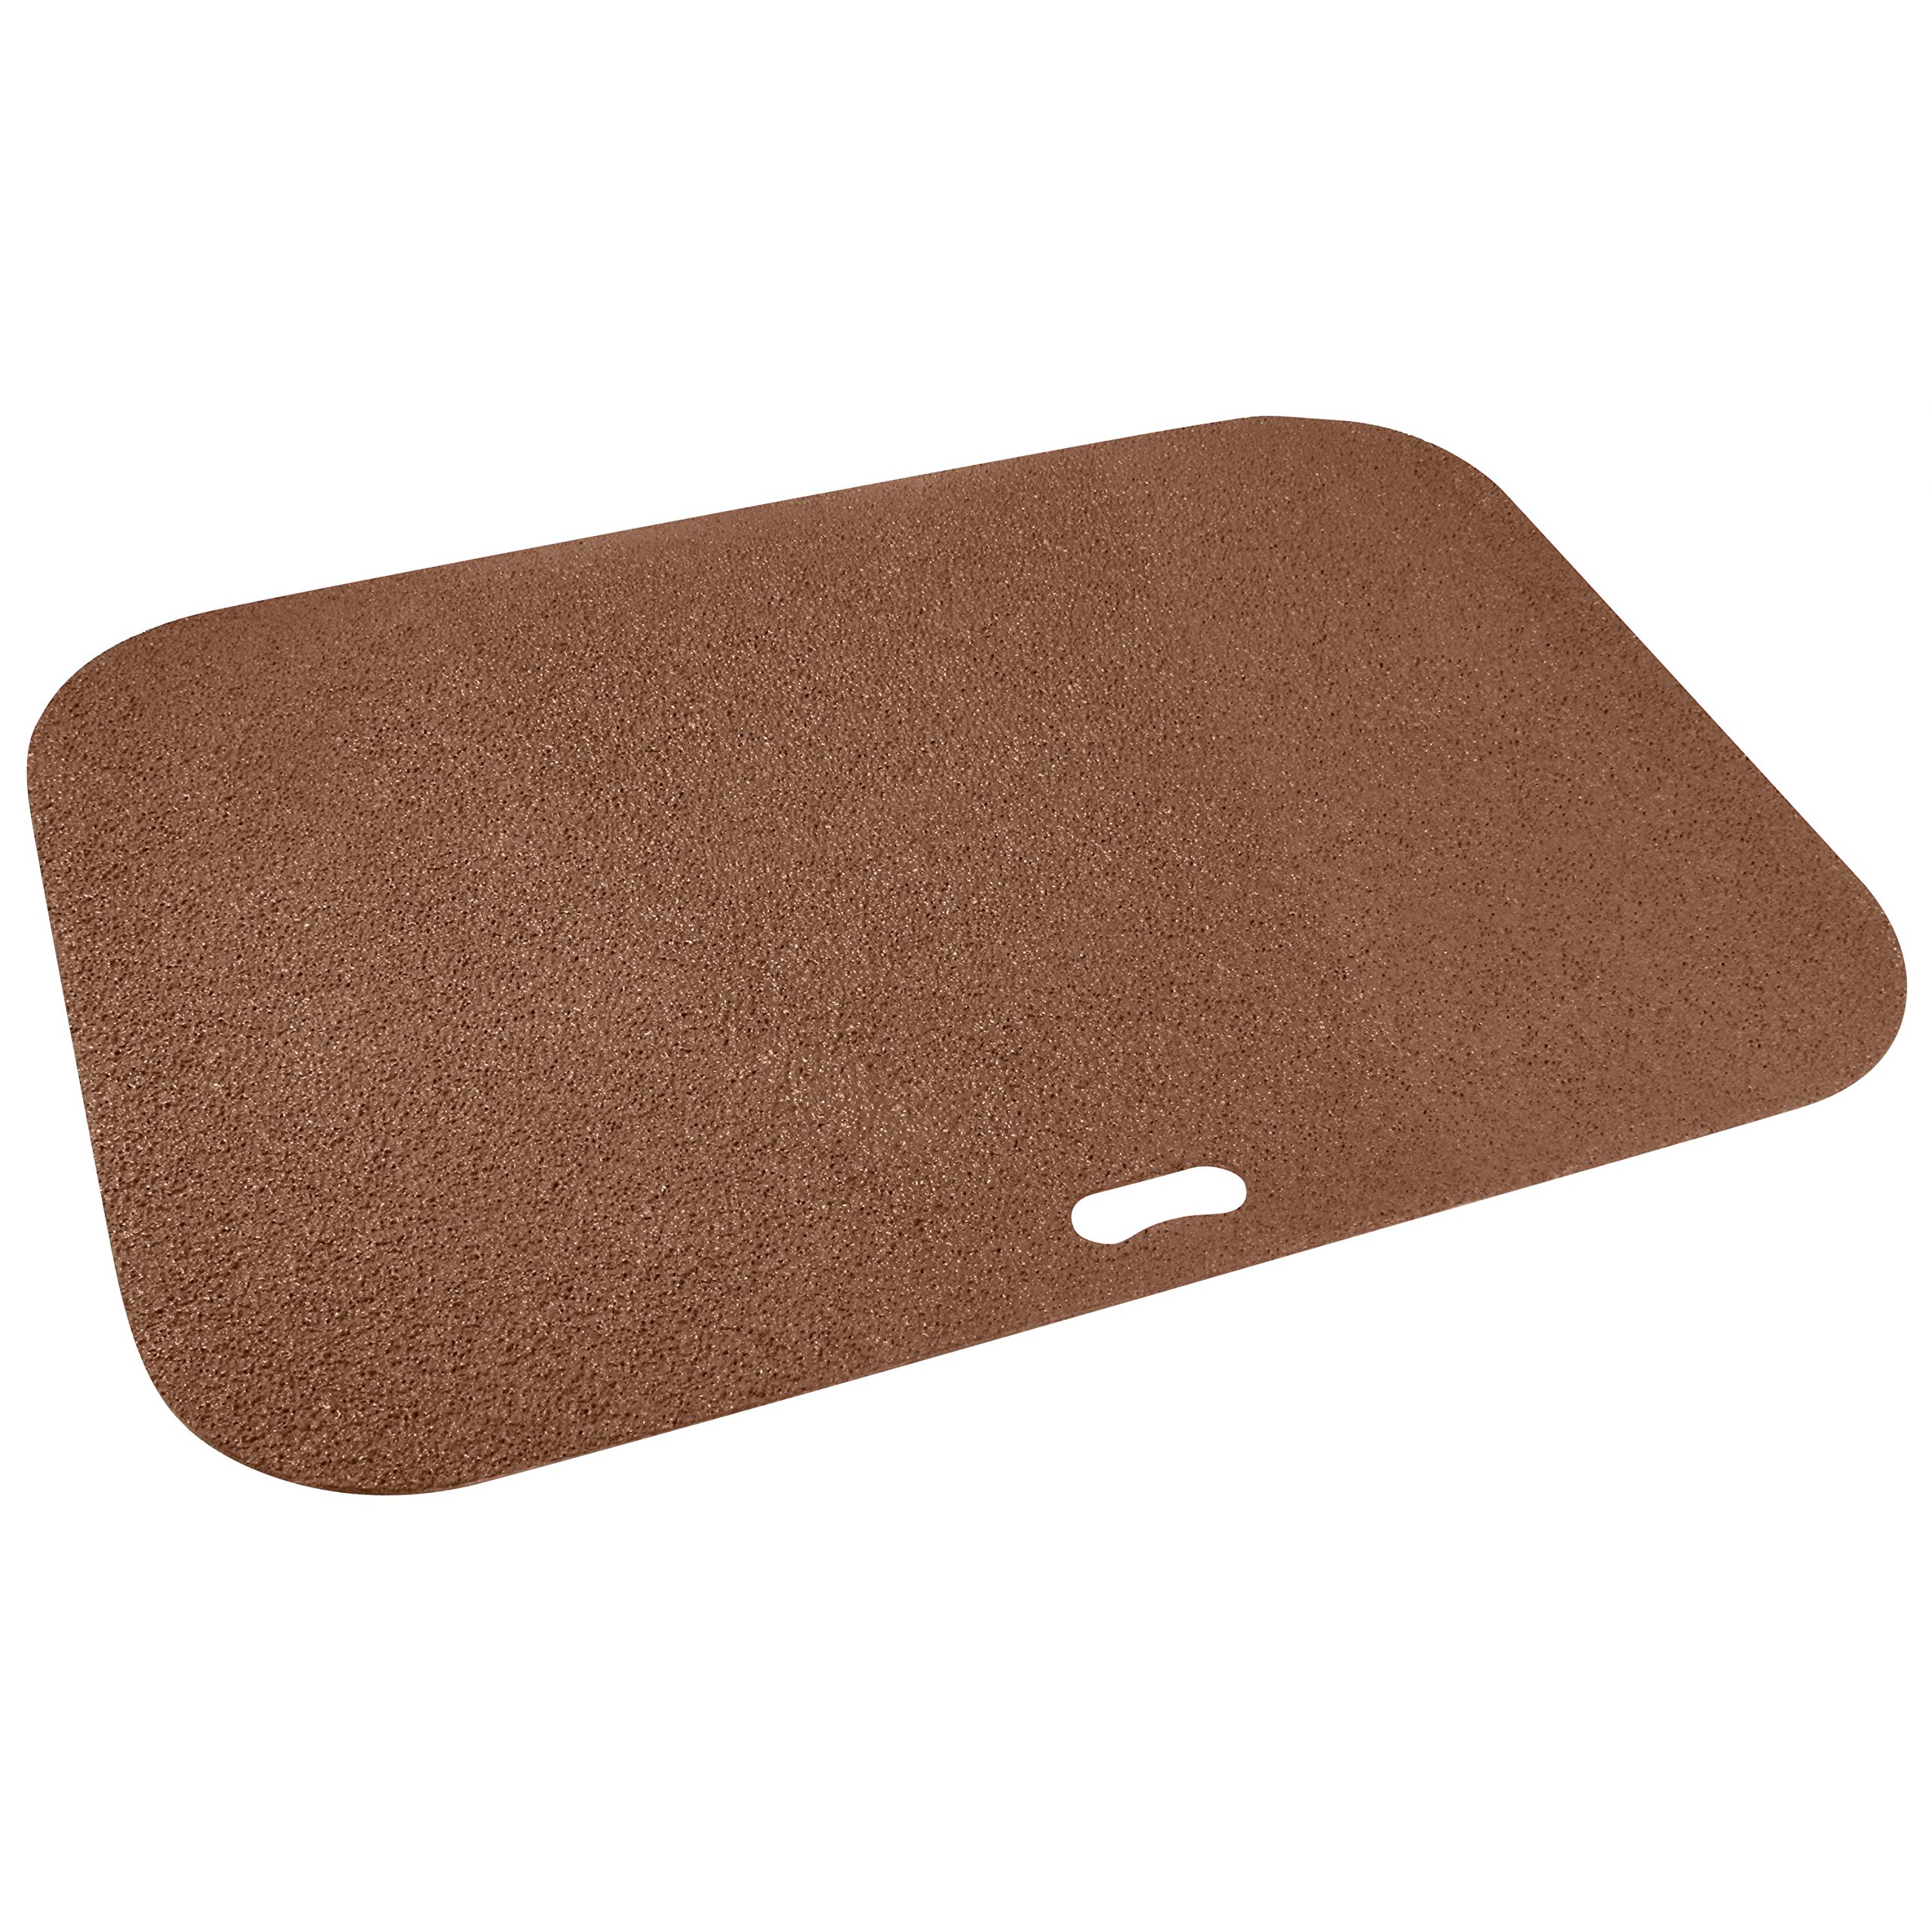 Diversitech Original Grill Mat - BBQ Floor Mat - Put Under Gas Grill, Fryer, Fire Pit - Protects Decks and Patios - 30 x 42 Inches - Rectangle - Brown by Diversitech Original Grill Mat (Image #1)